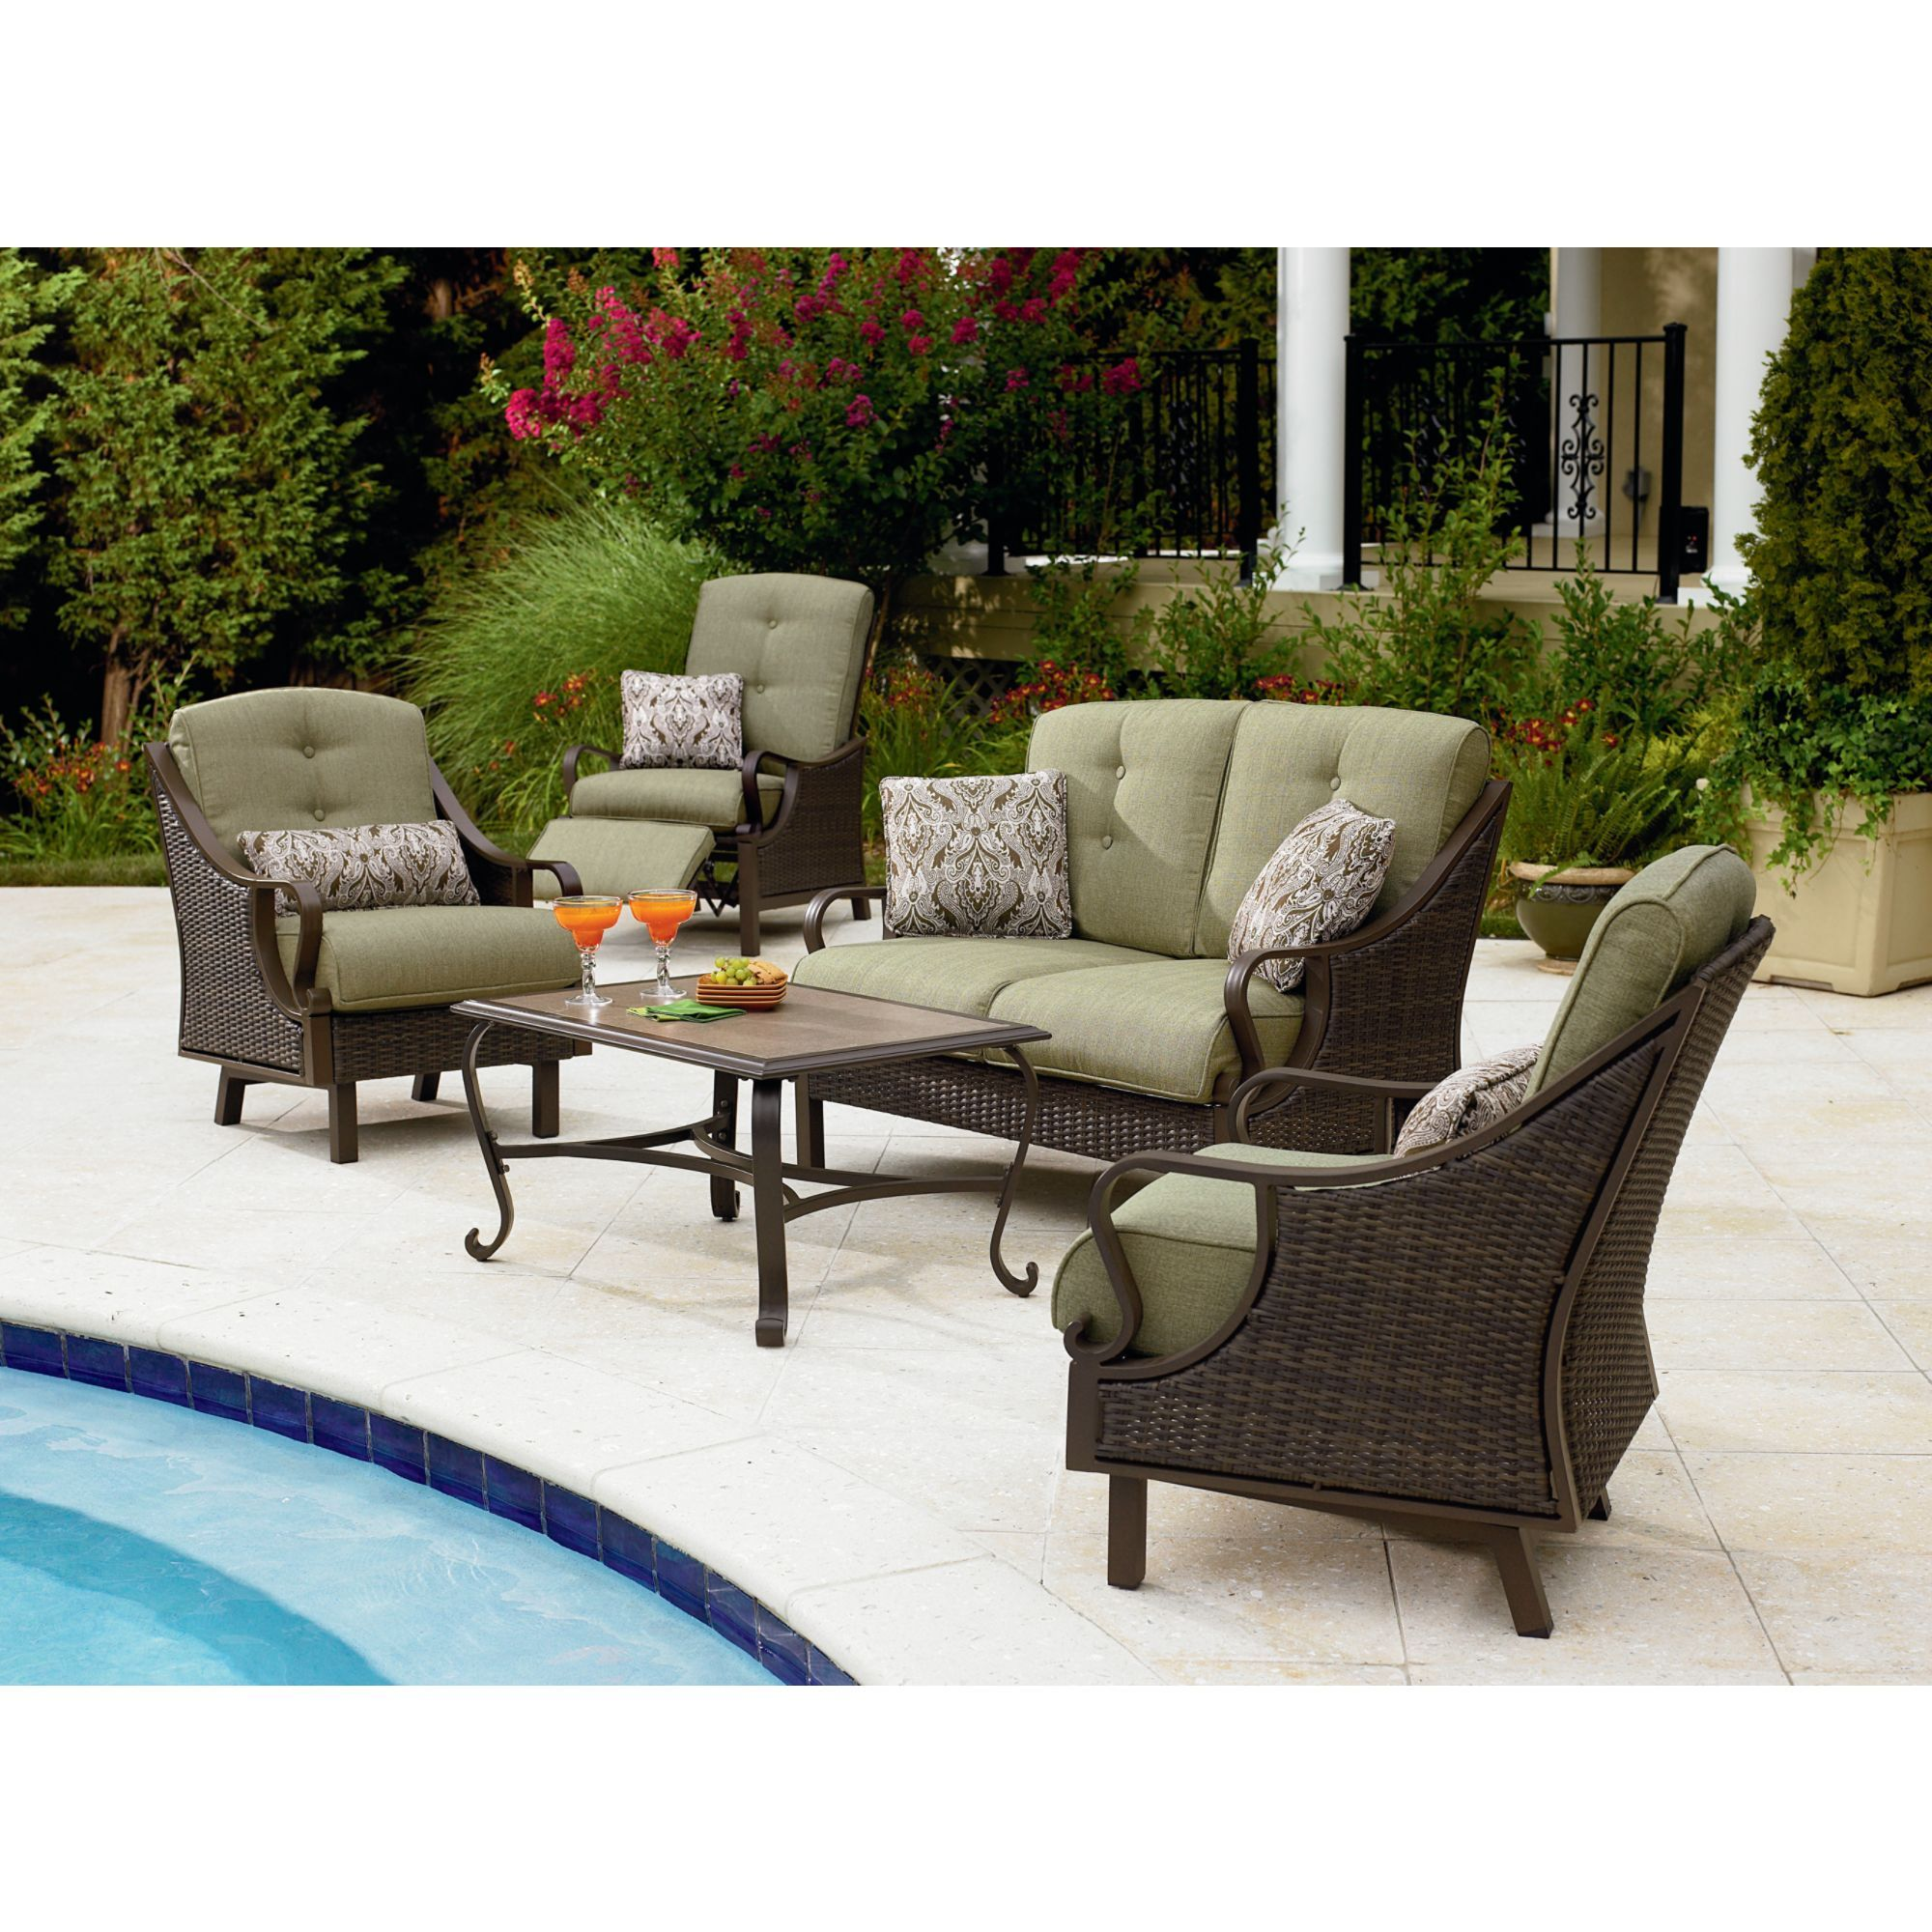 boy best wicker unique lazy inspirational outdoor of clearance patio check furniture resin master pc conversation table sets